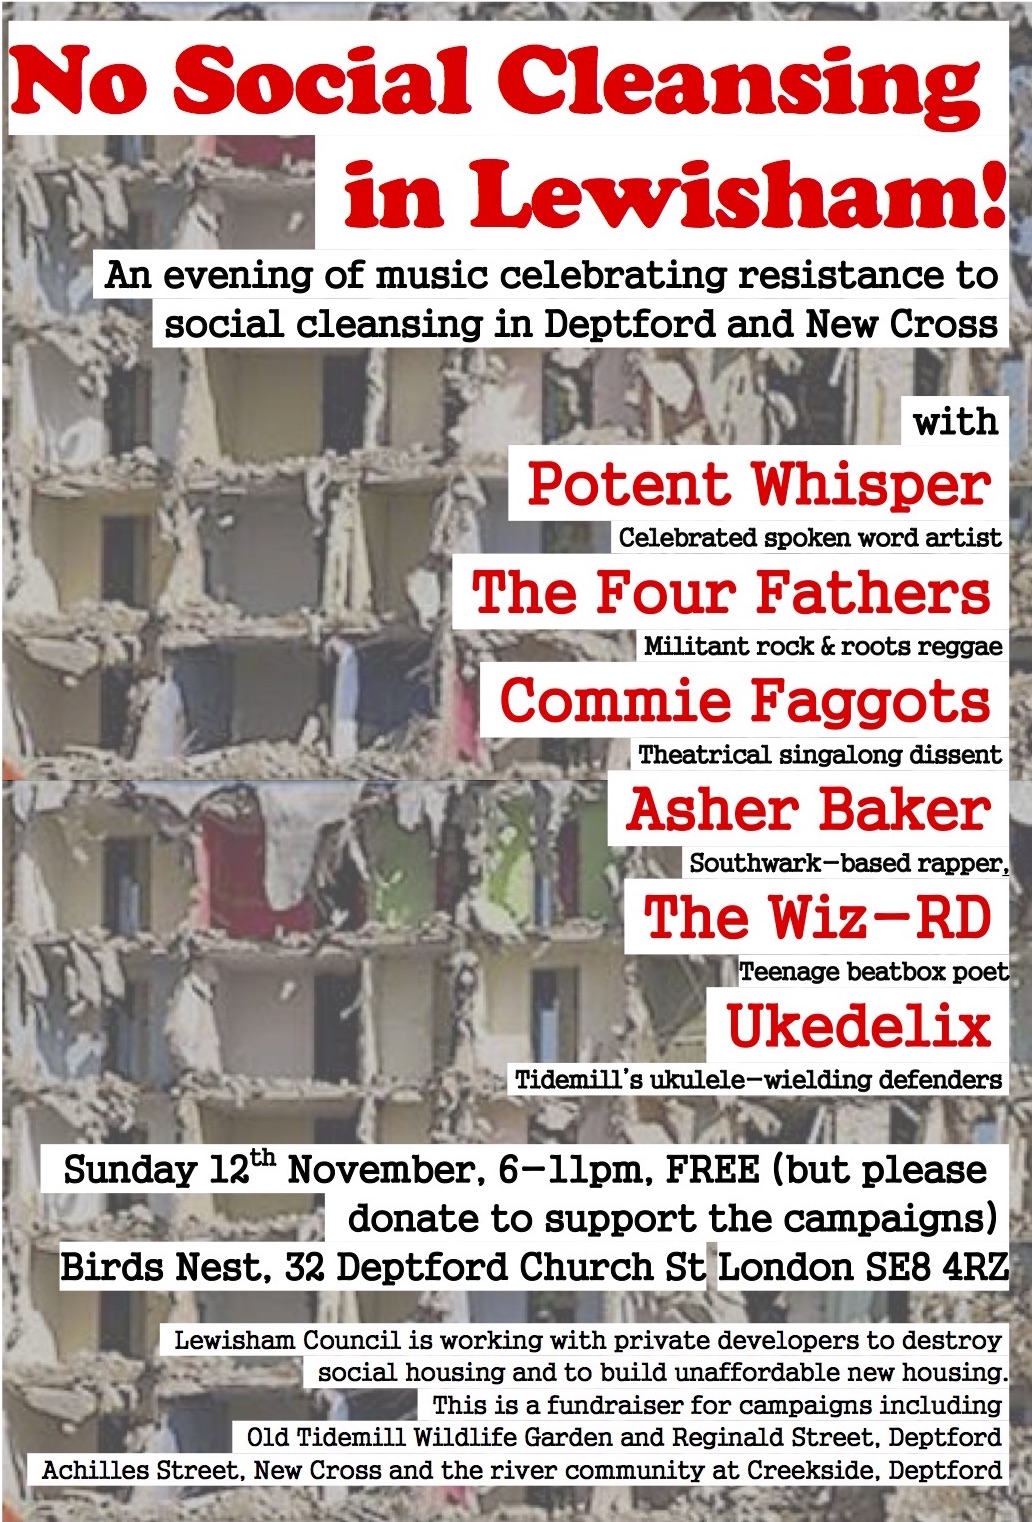 The poster for 'No Social Cleansing in Lewisham' at the Birds Nest in Deptford on November 12, 2017.